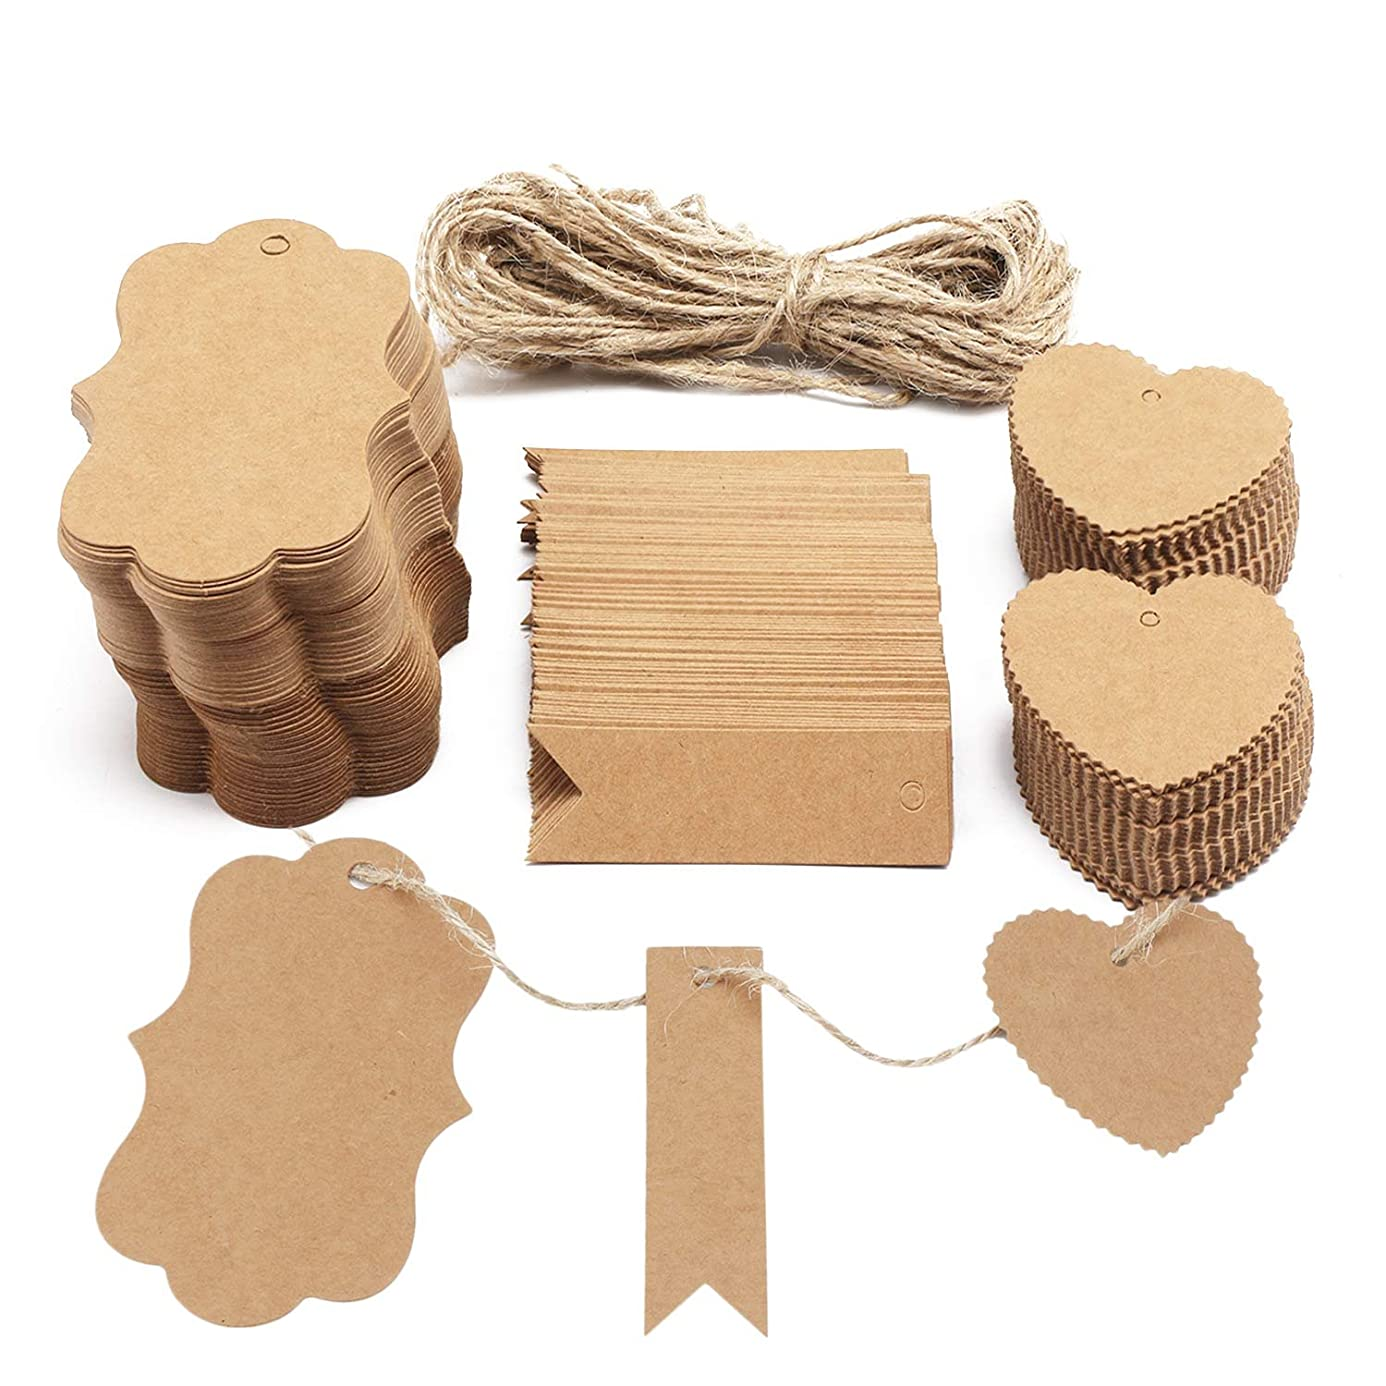 Paper Gift Tags, Segarty Custom Brown Kraft Paper Tags Price Tags Label Tags 300 PCS with Natural Jute Twine for Wedding Birthday Christmas Thanksgiving bxo6439090